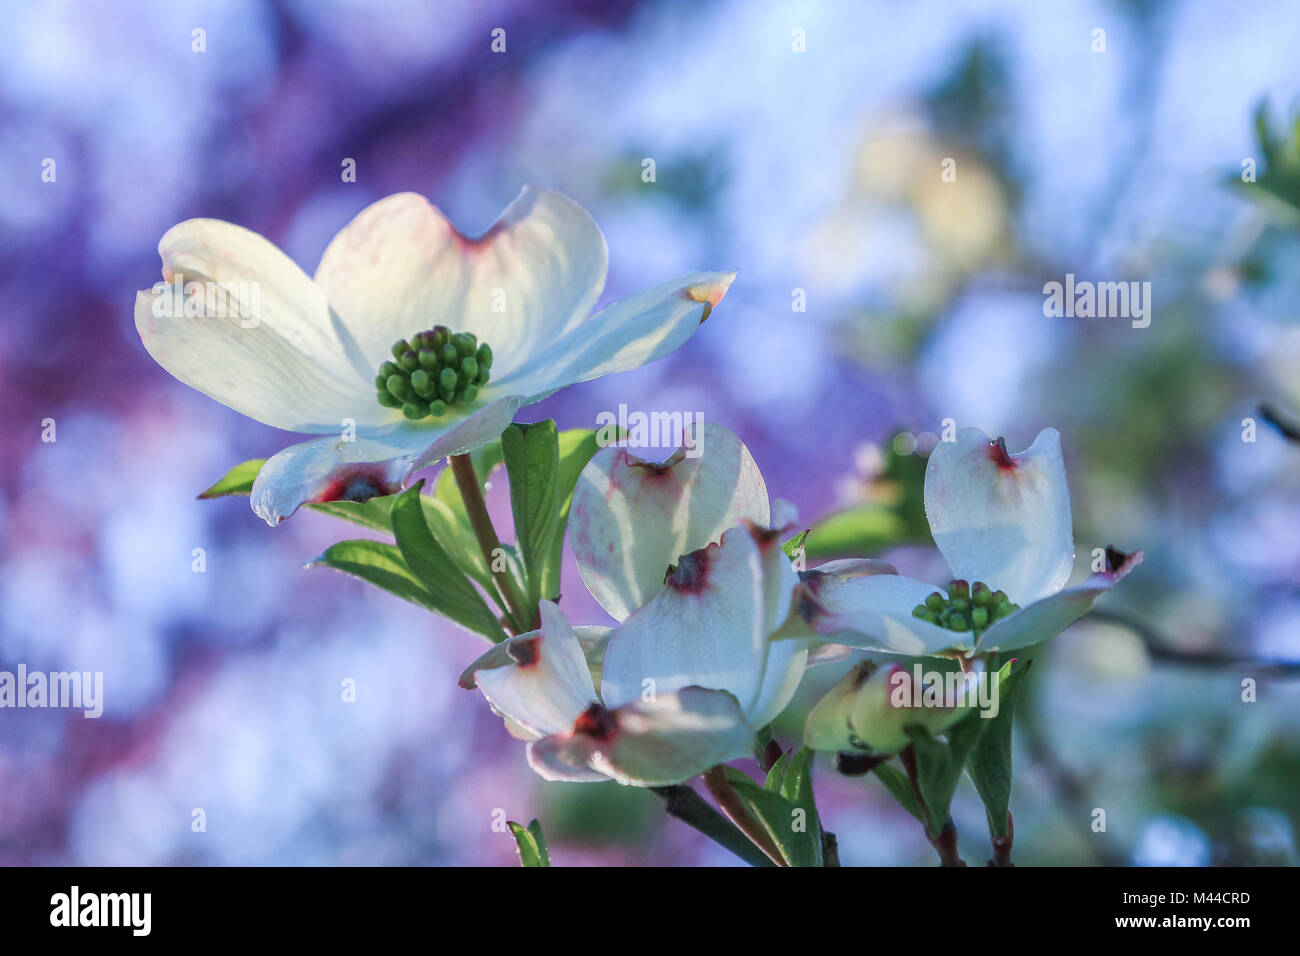 Beautiful view of the blooming dogwood flower; blooming red-bud tree in the backgkround - Stock Image